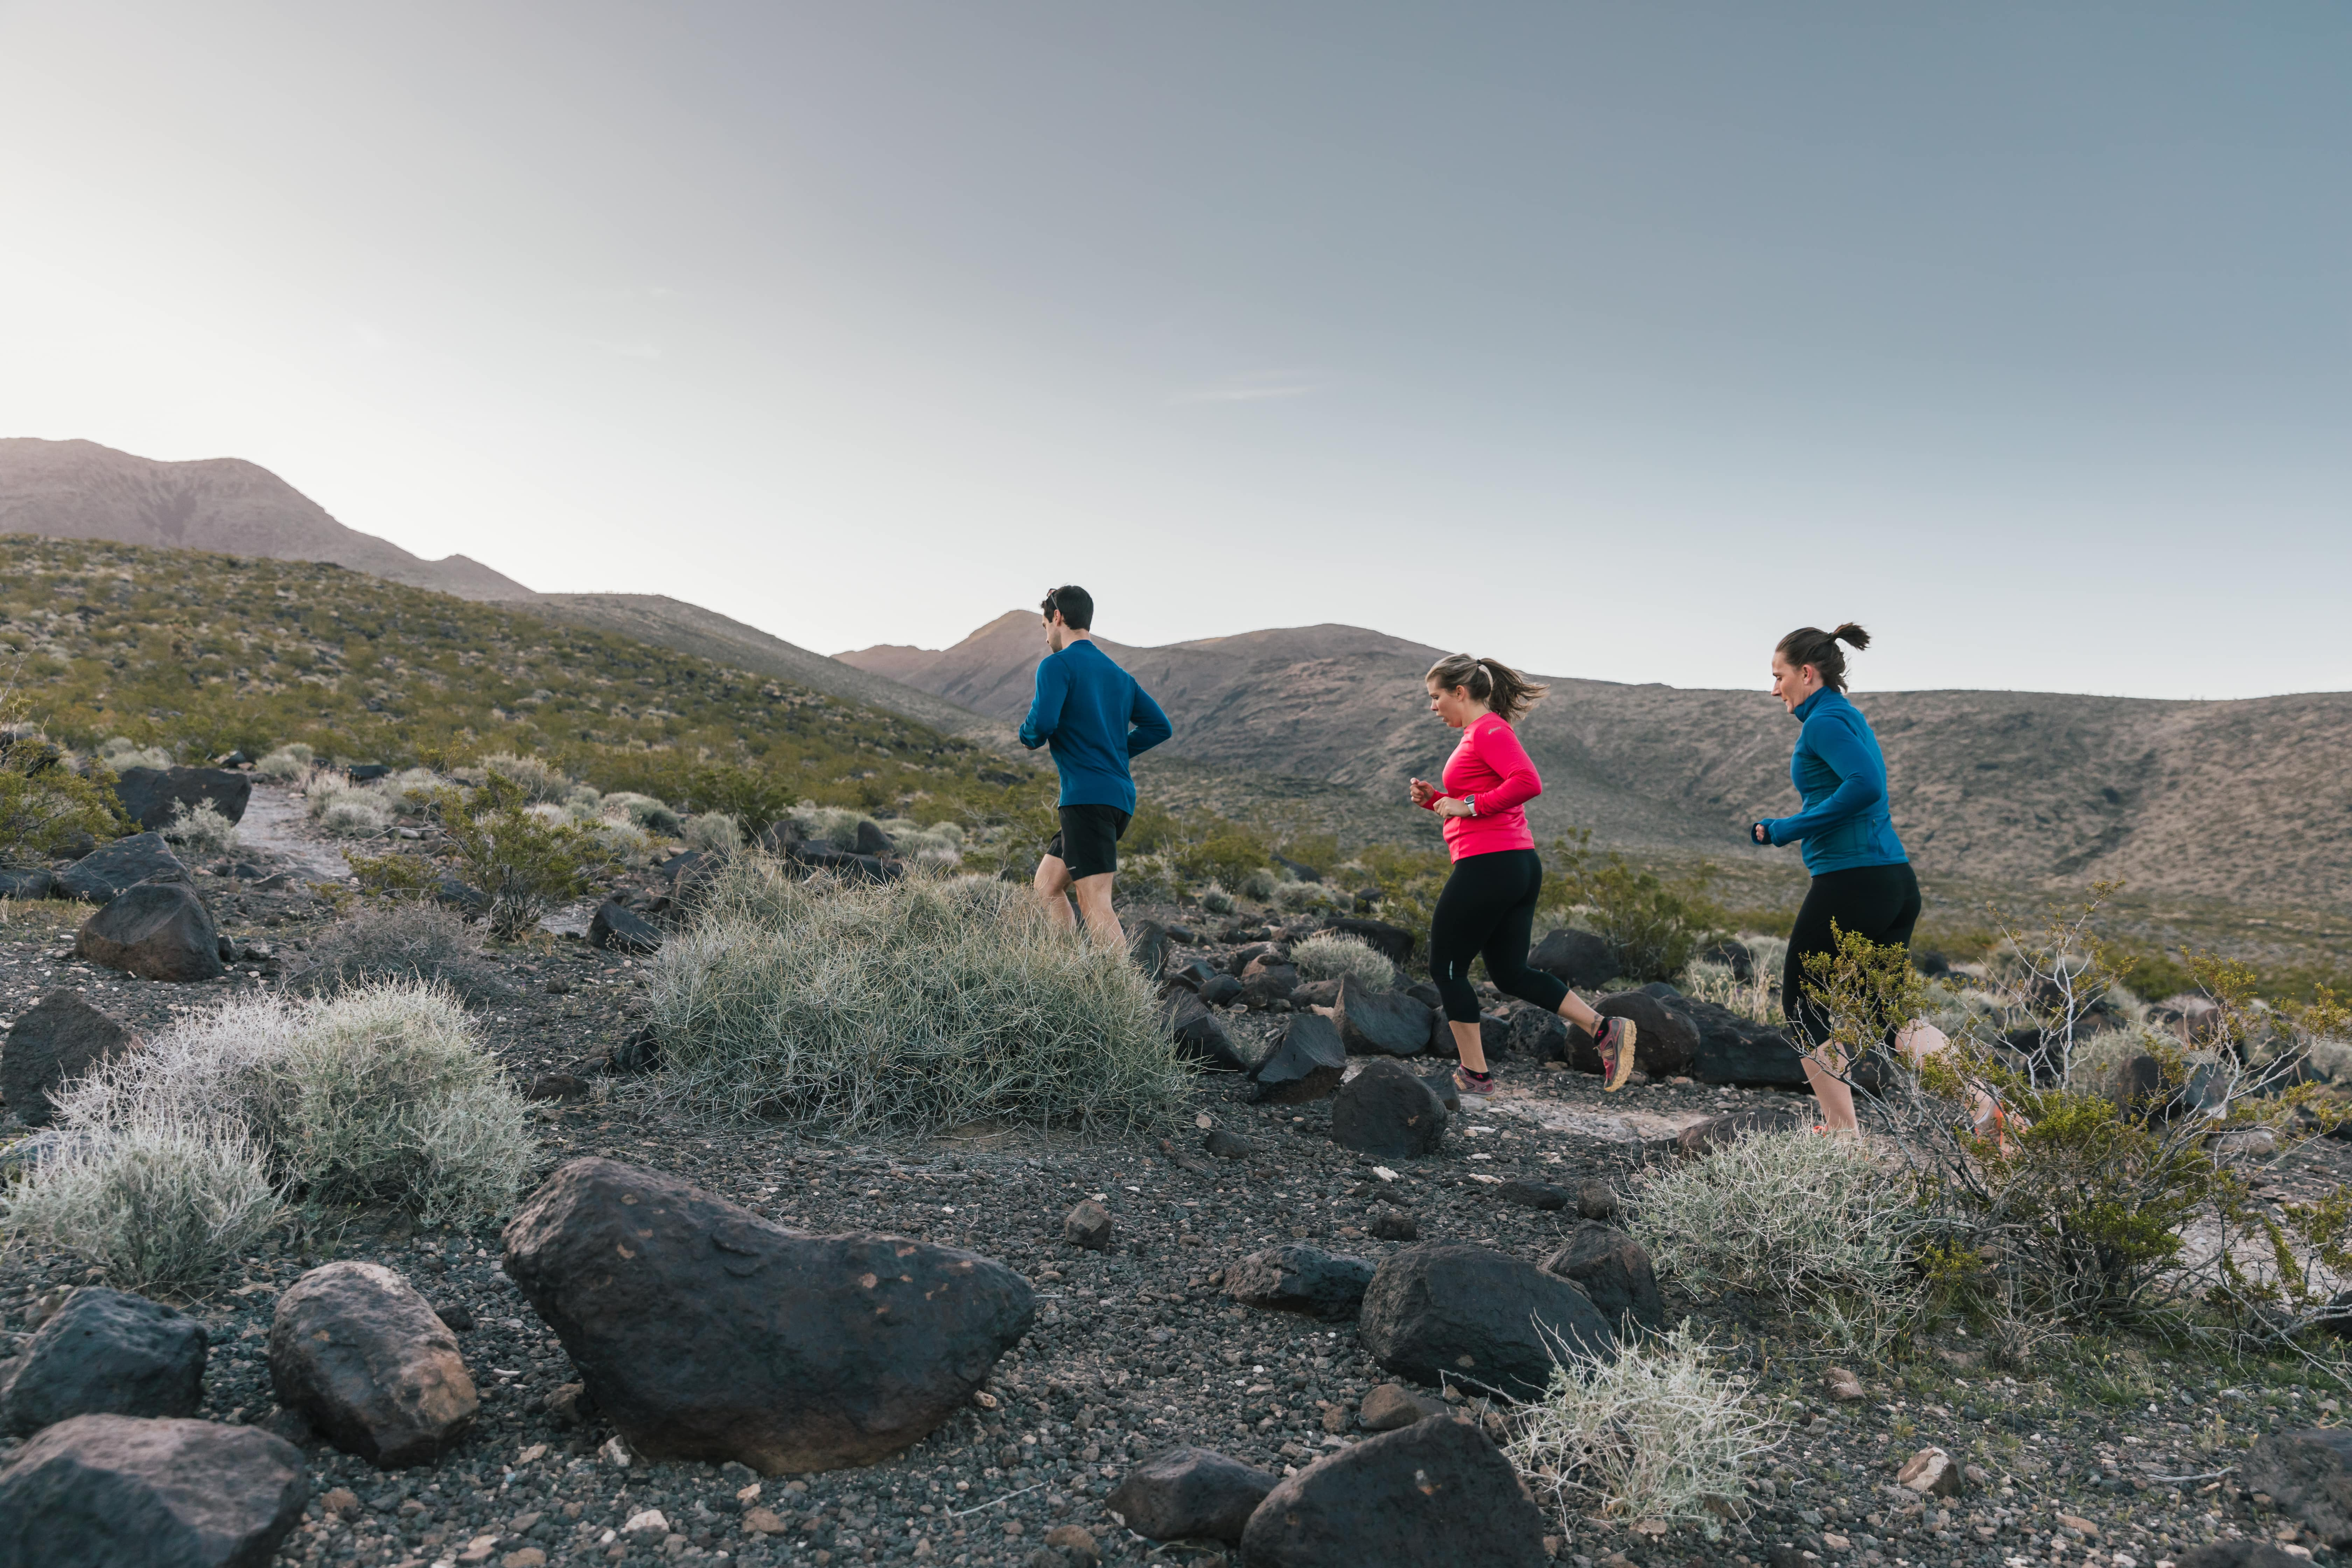 Two women and a man enjoy a run to see the sights of the valley.